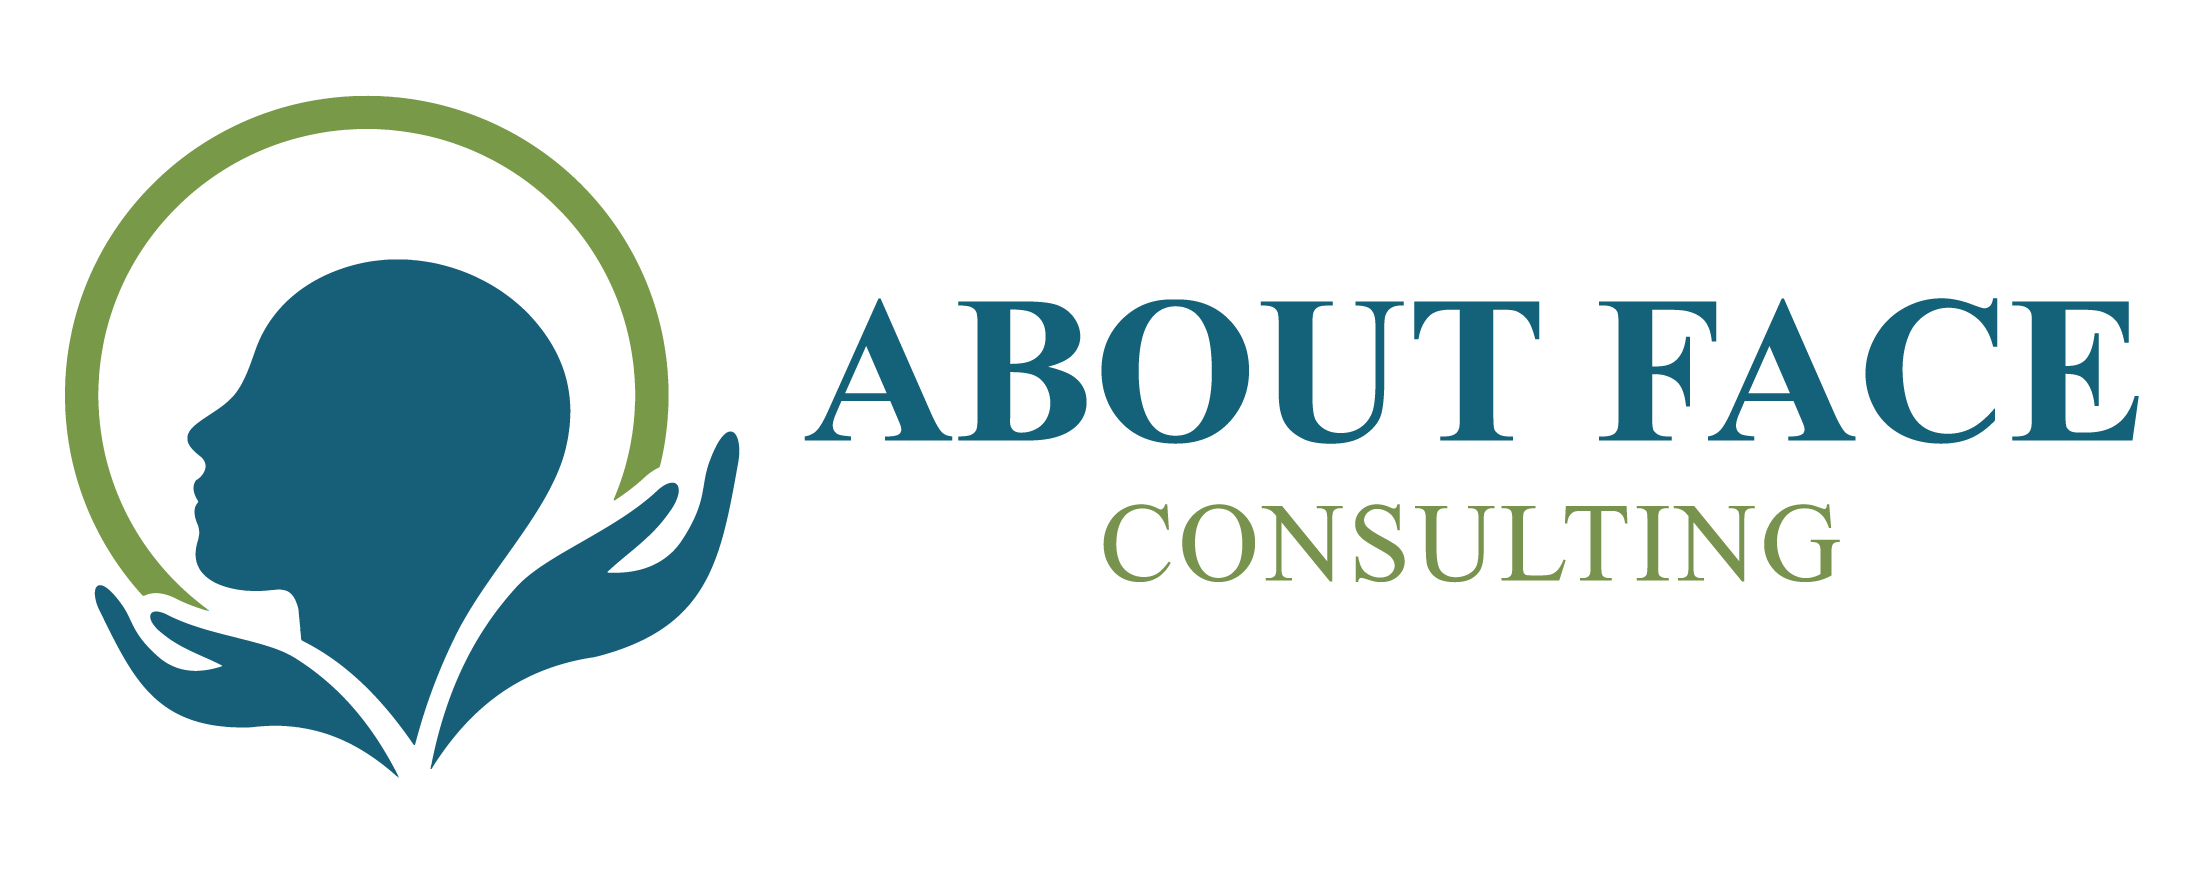 About Face Consulting | Counseling for Professionals, Caregivers, Military, and Children | Alexandria, VA